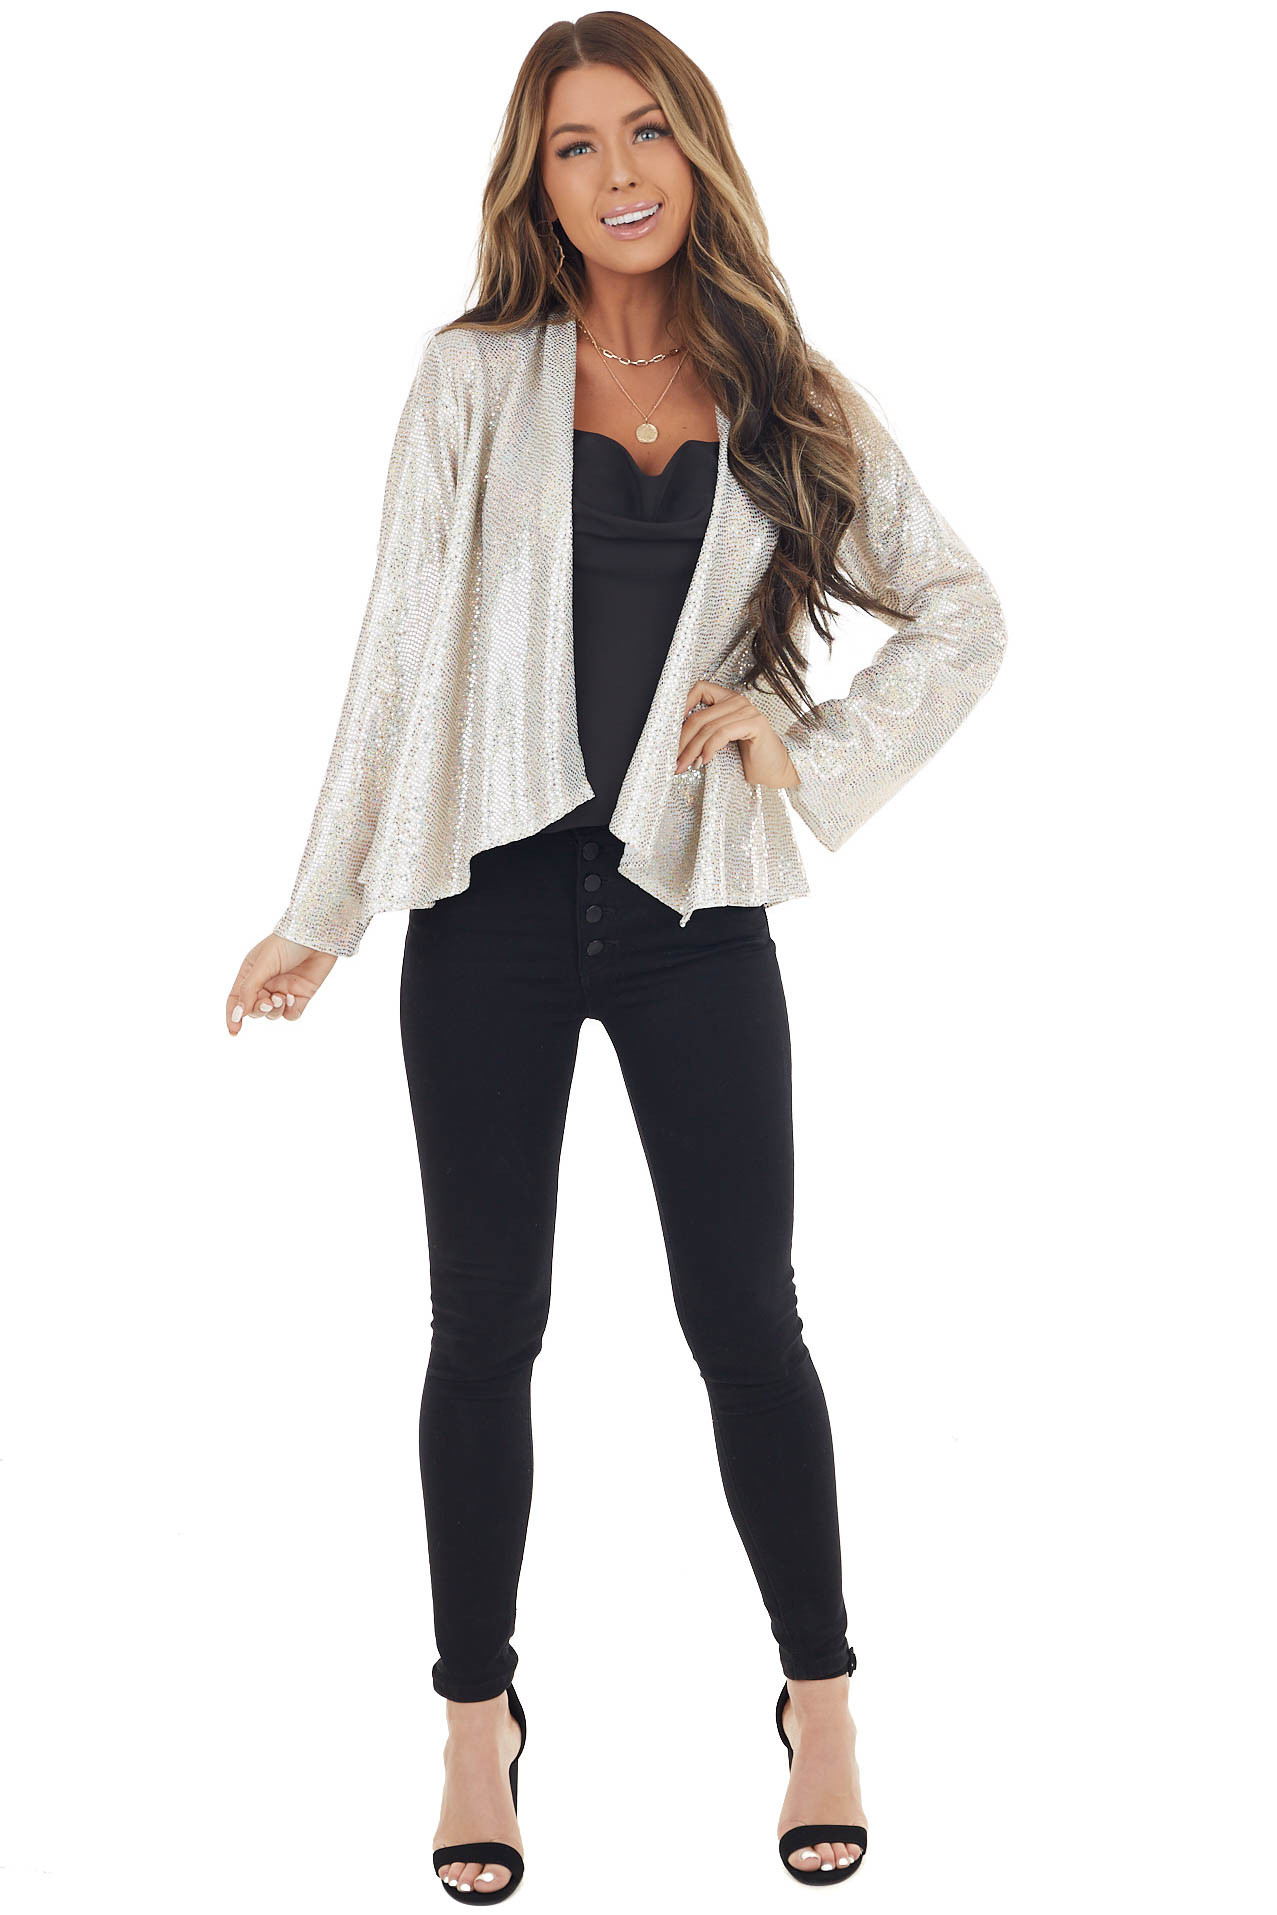 Off White Long Sleeve Blazer with Cream Sequins